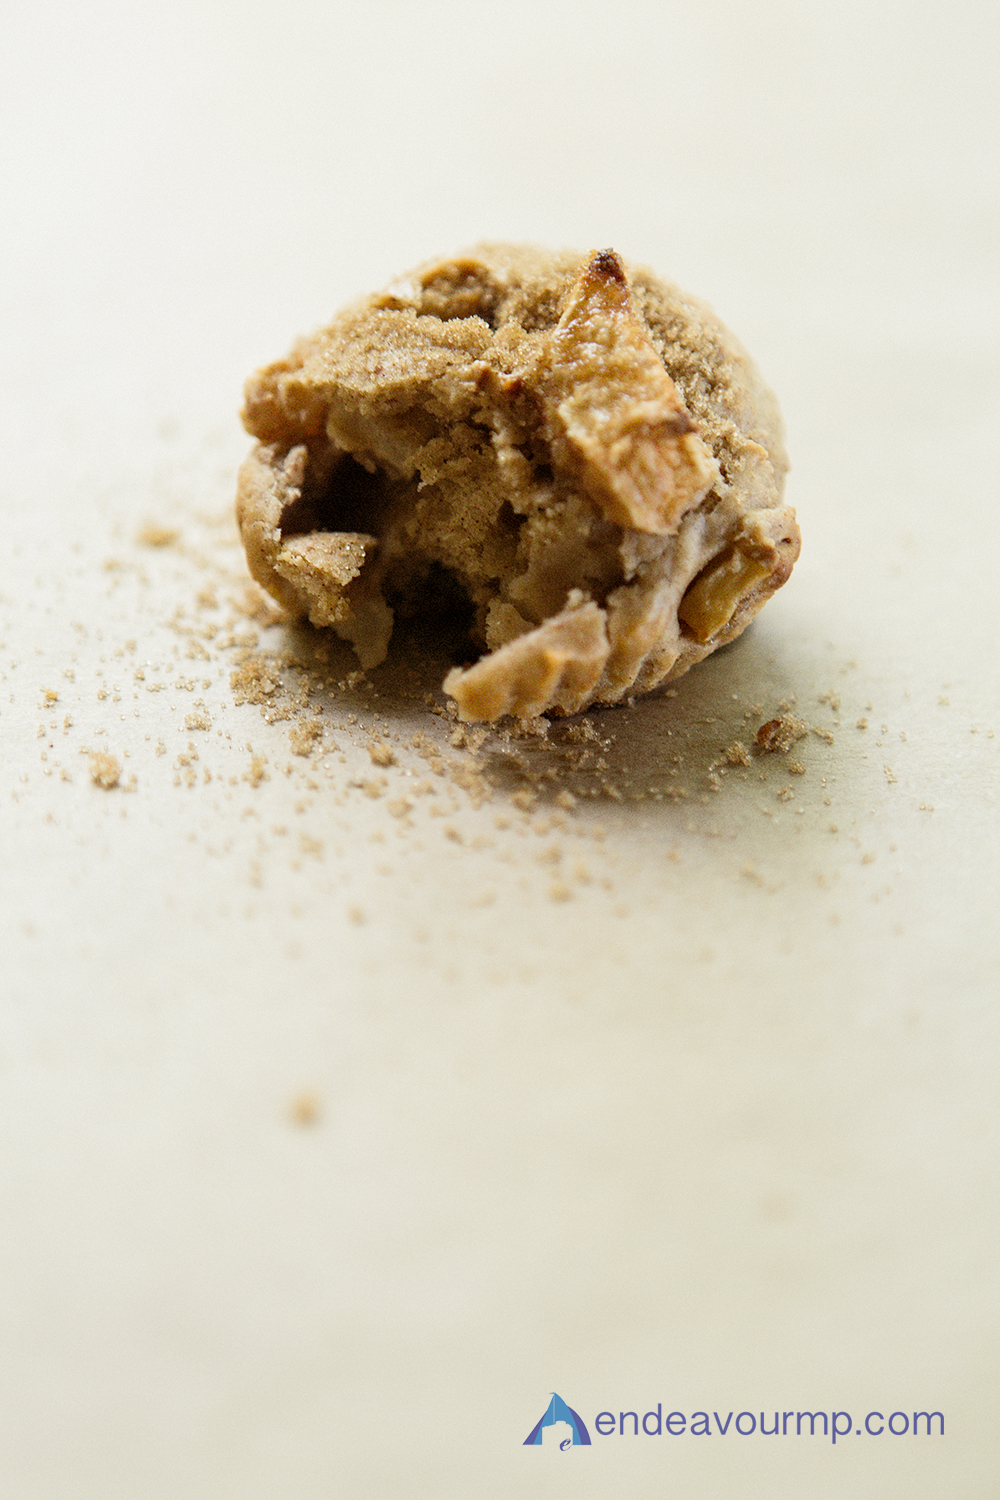 EMP_Food_applemuffin_011.jpg